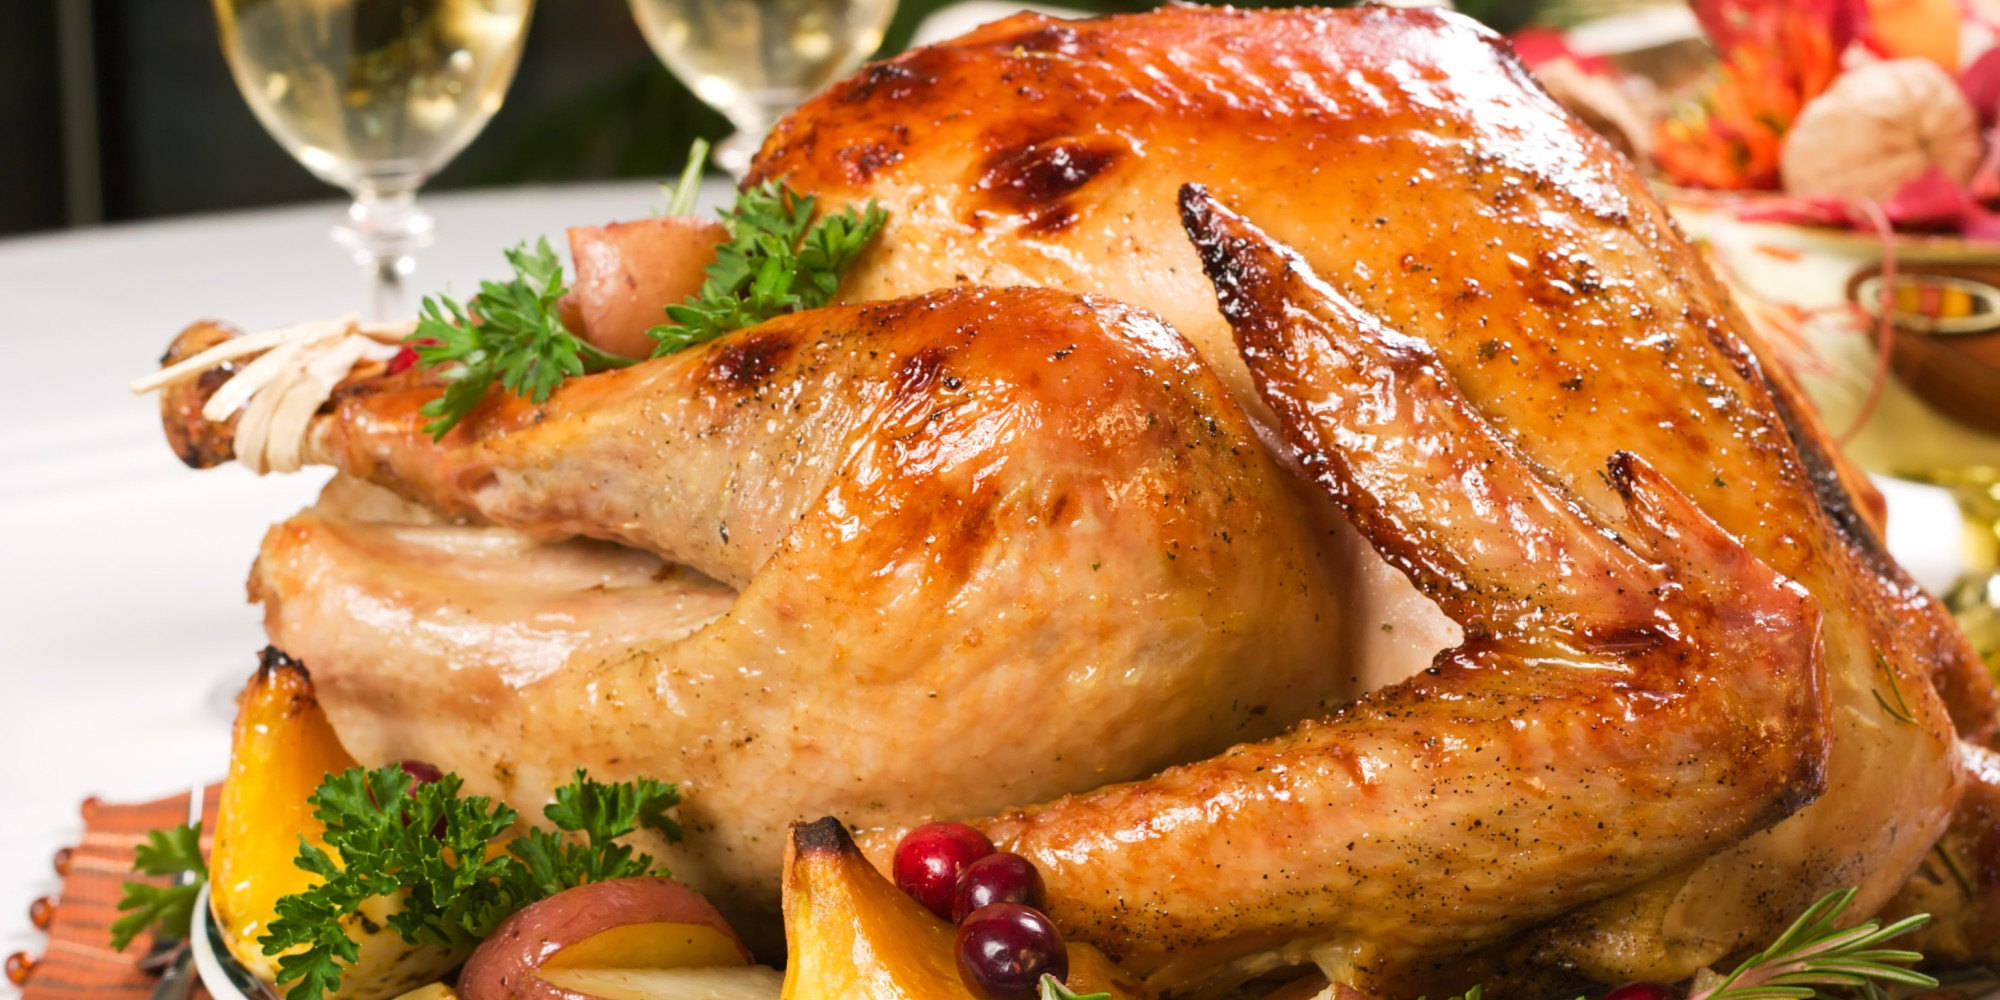 images of thanksgiving foods 48 835 reasons to enjoy lots of food this thanksgiving 7677